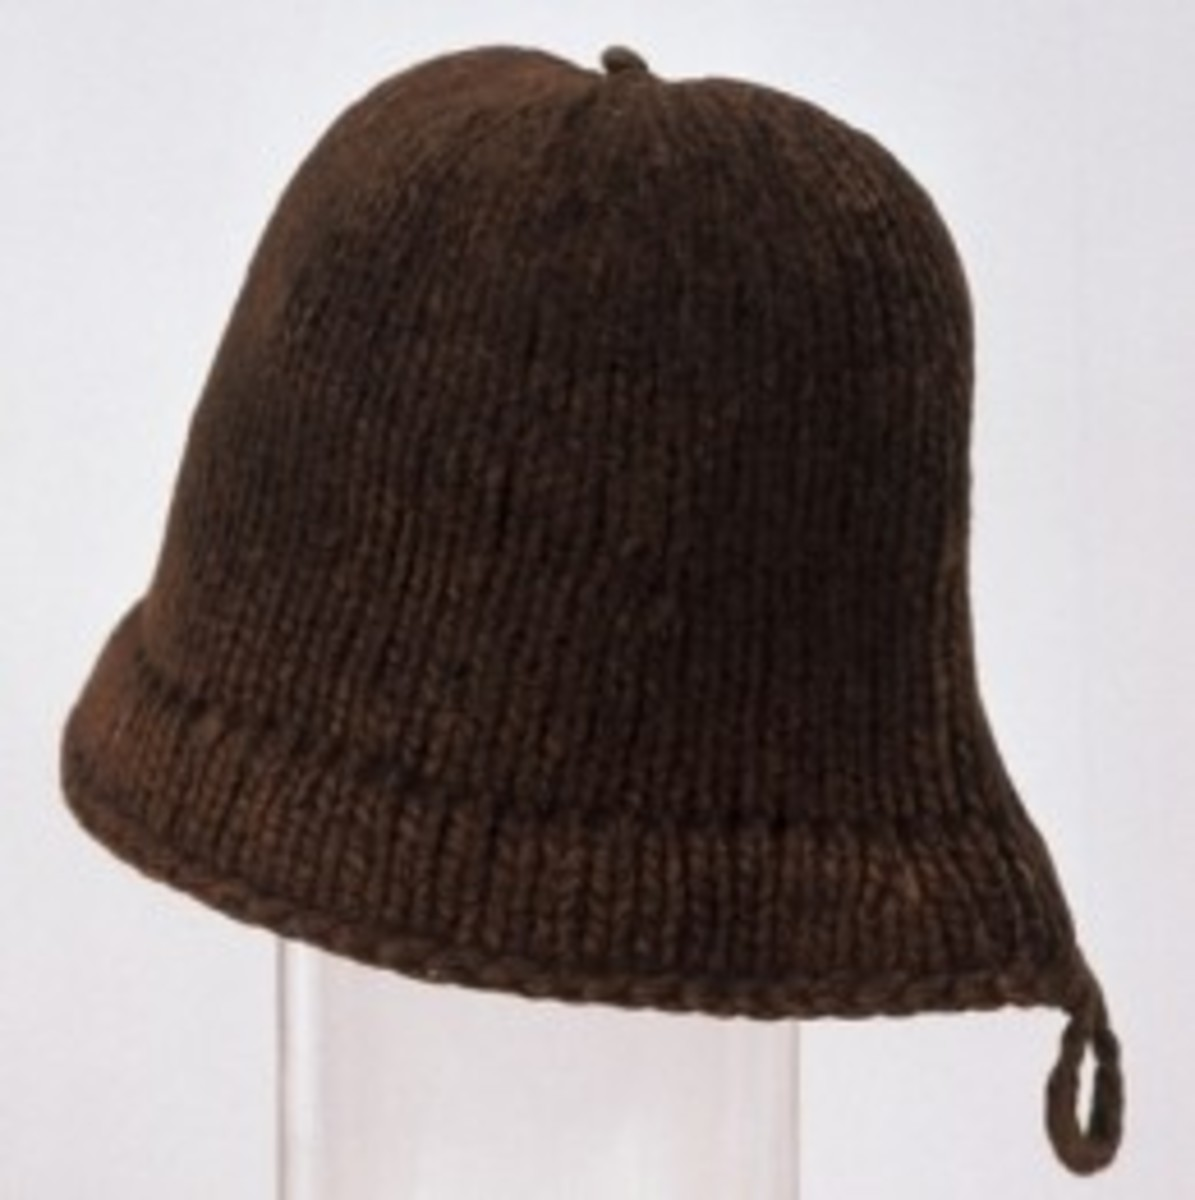 "This is the woolen Welsh hat that the Plimouth settlers wore after the first months on American soil. No black ""pilgrim"" hats."